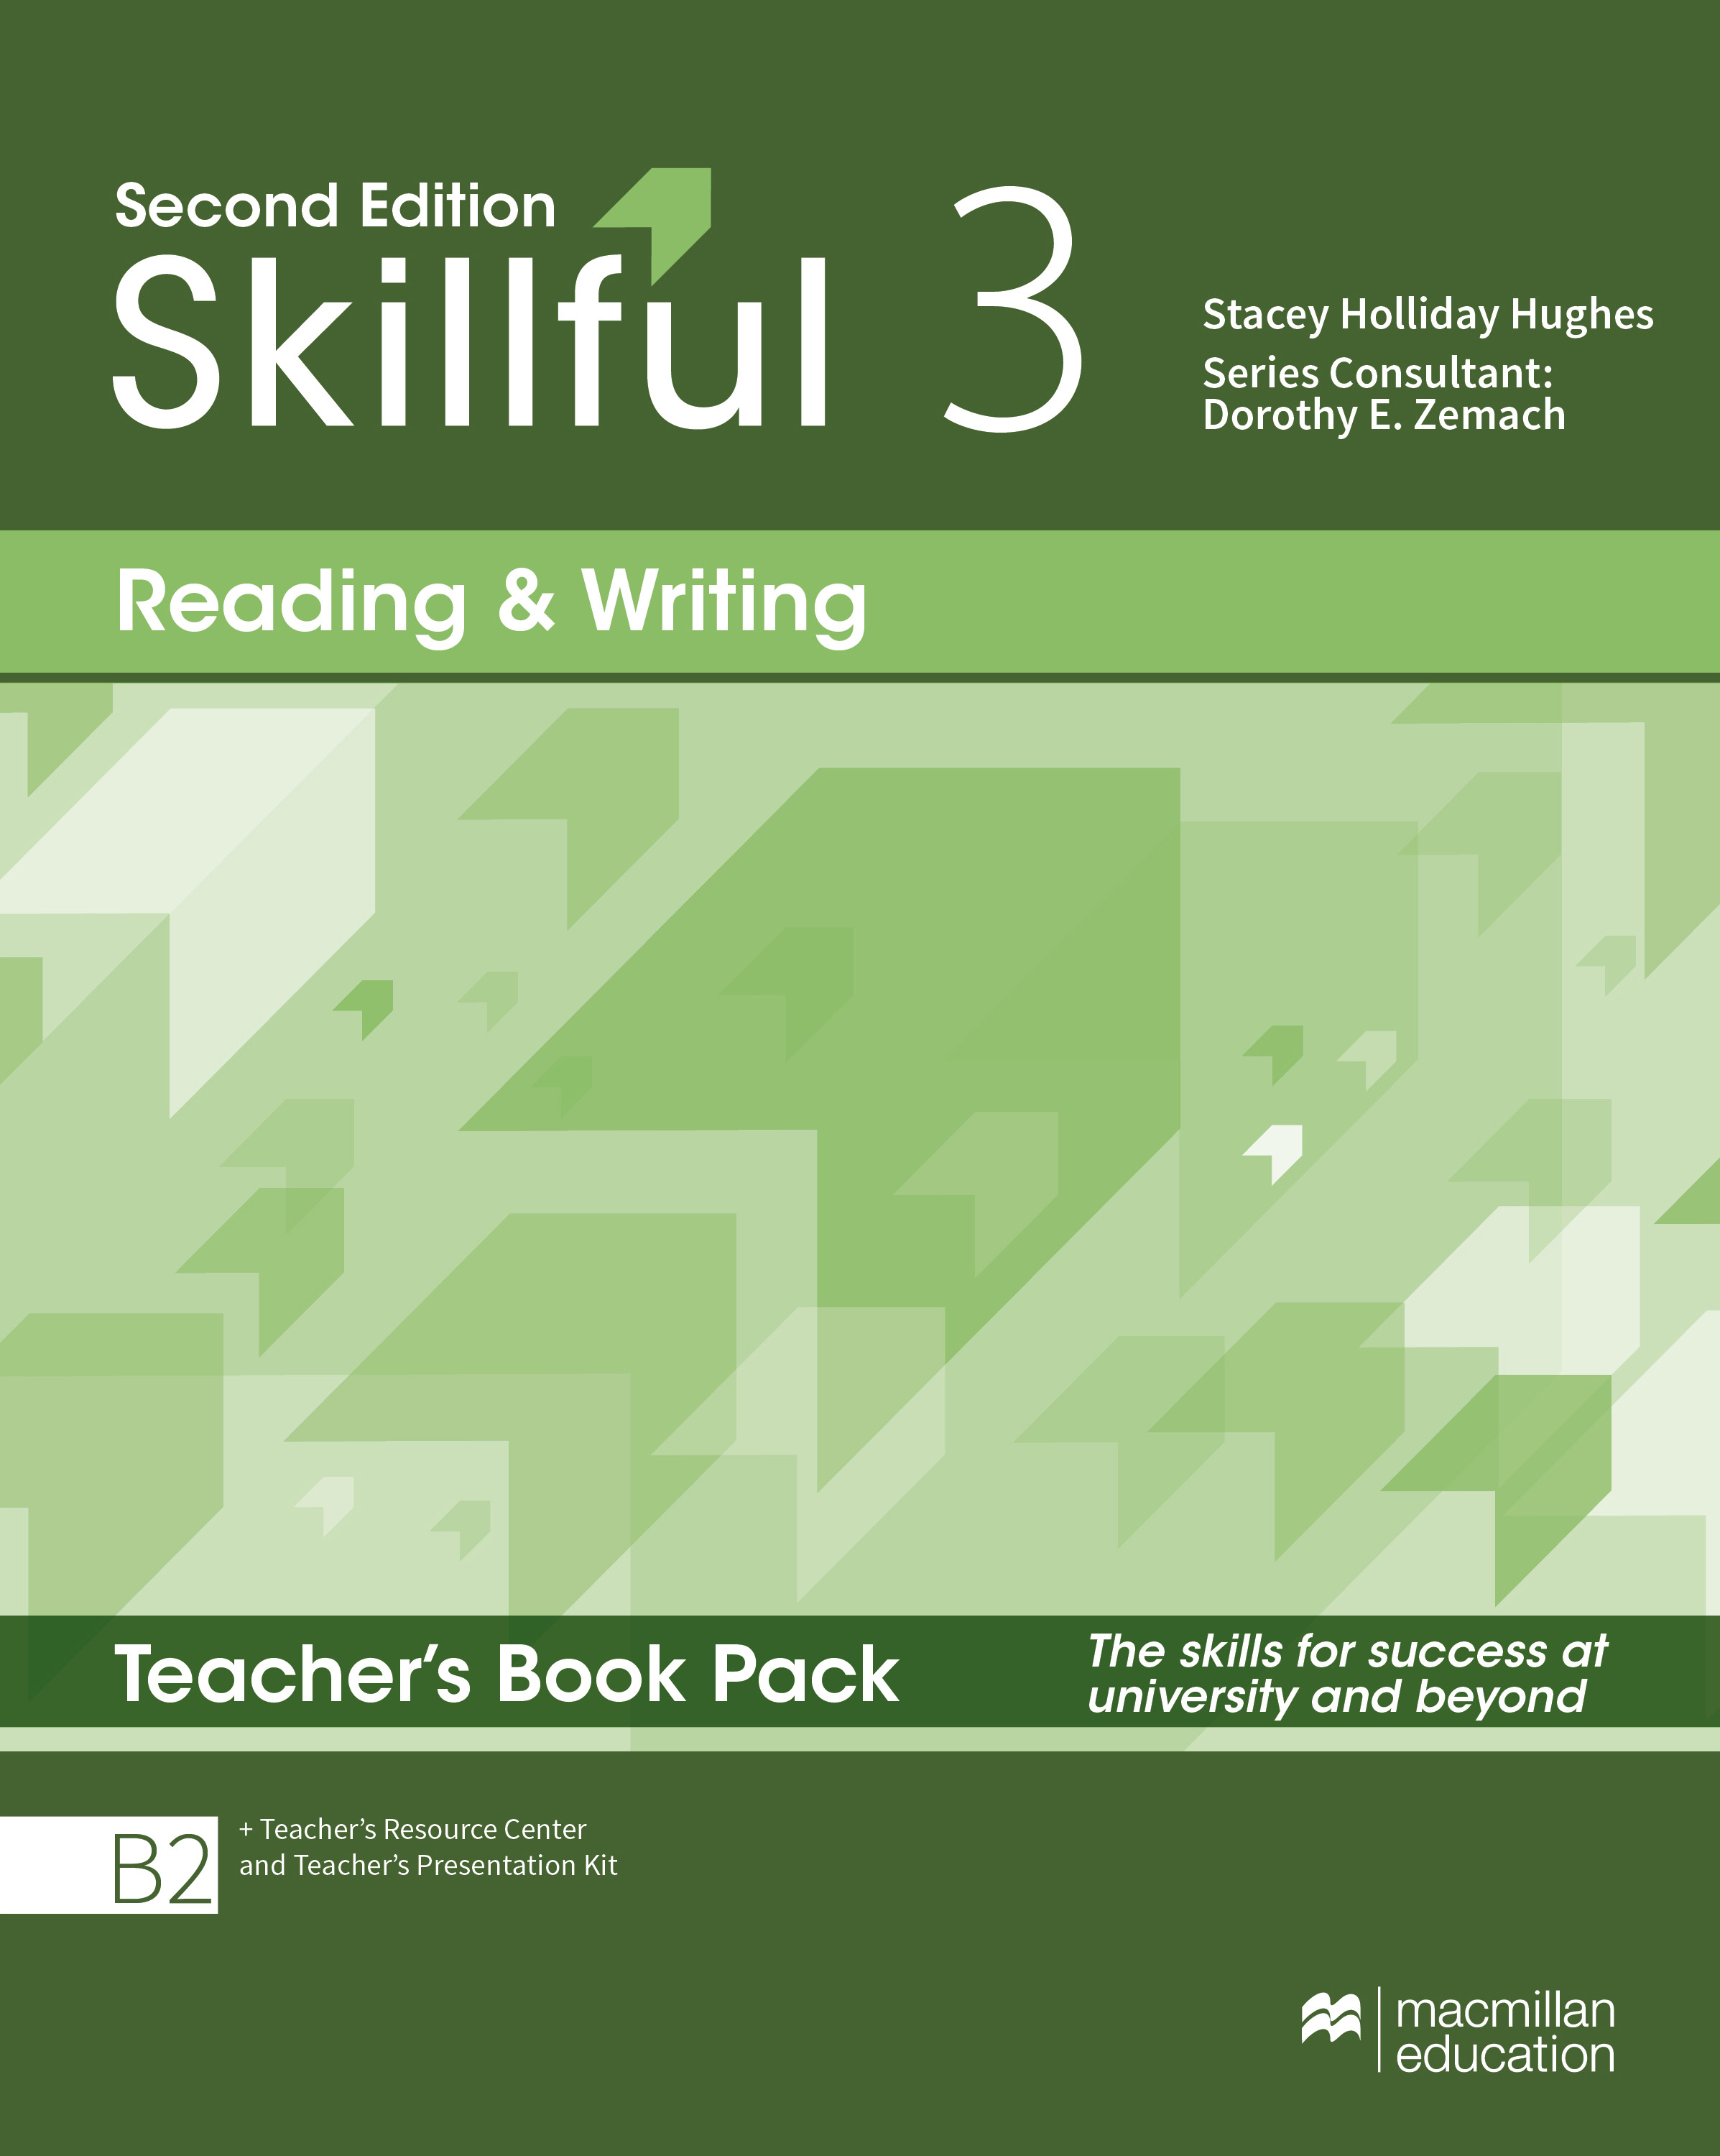 Skillful Second Edition Level 3 Reading and Writing Premium Teacher